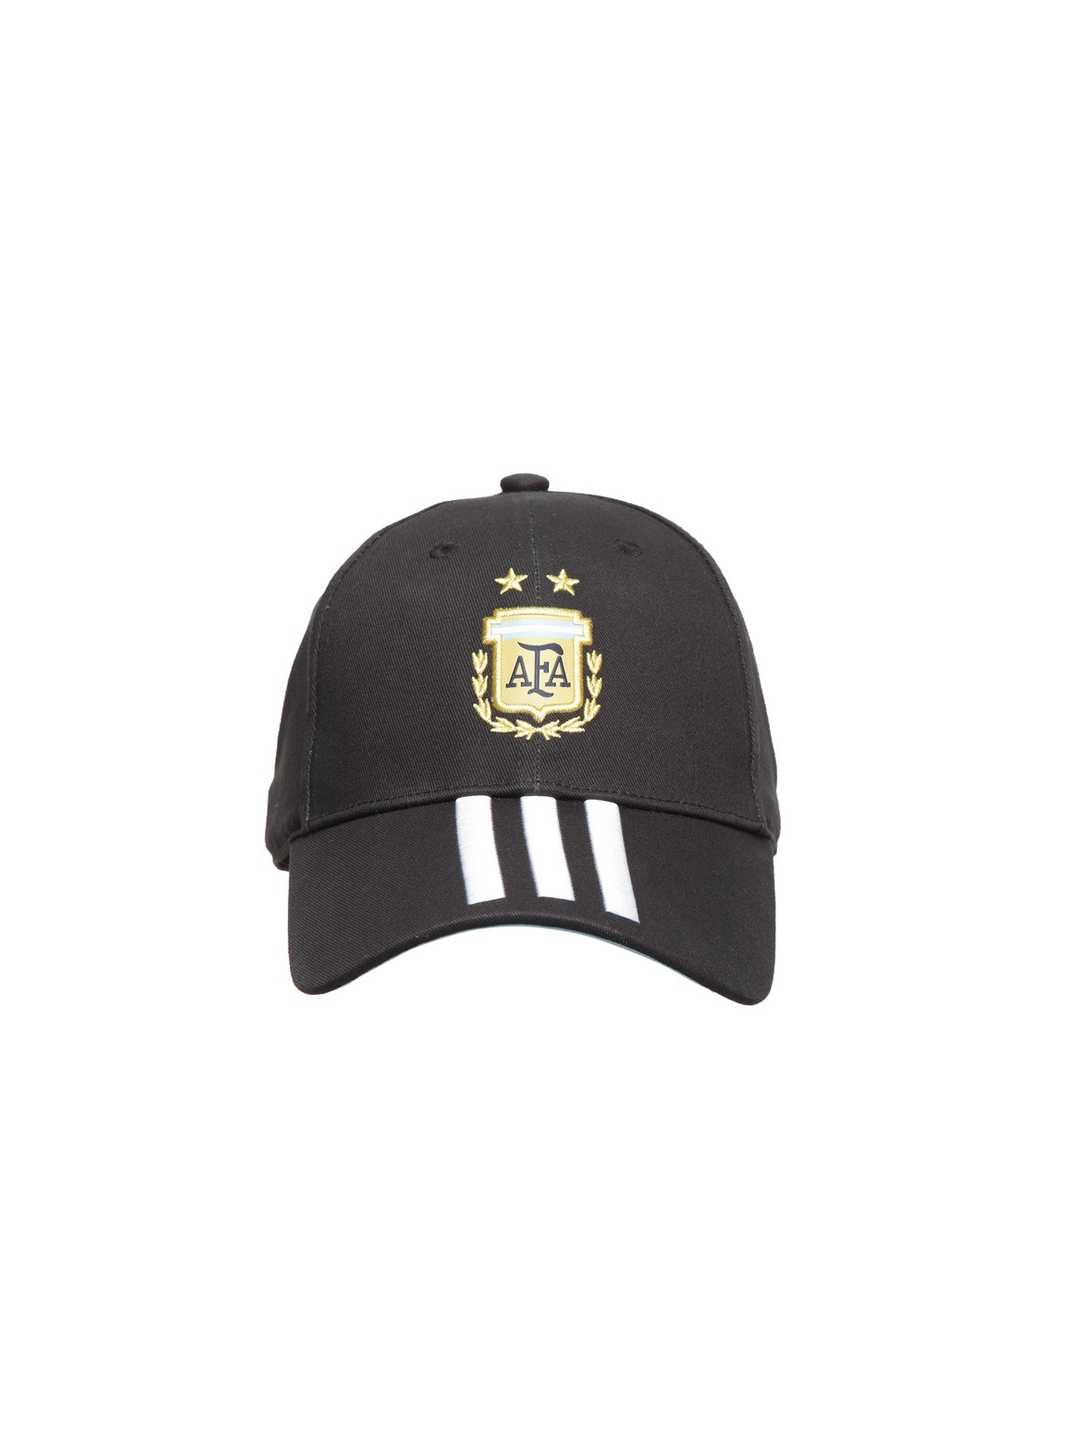 Buy Adidas Unisex Black AFA 3S Solid Cap - Caps for Unisex 2496163 ... de11d5055ea2